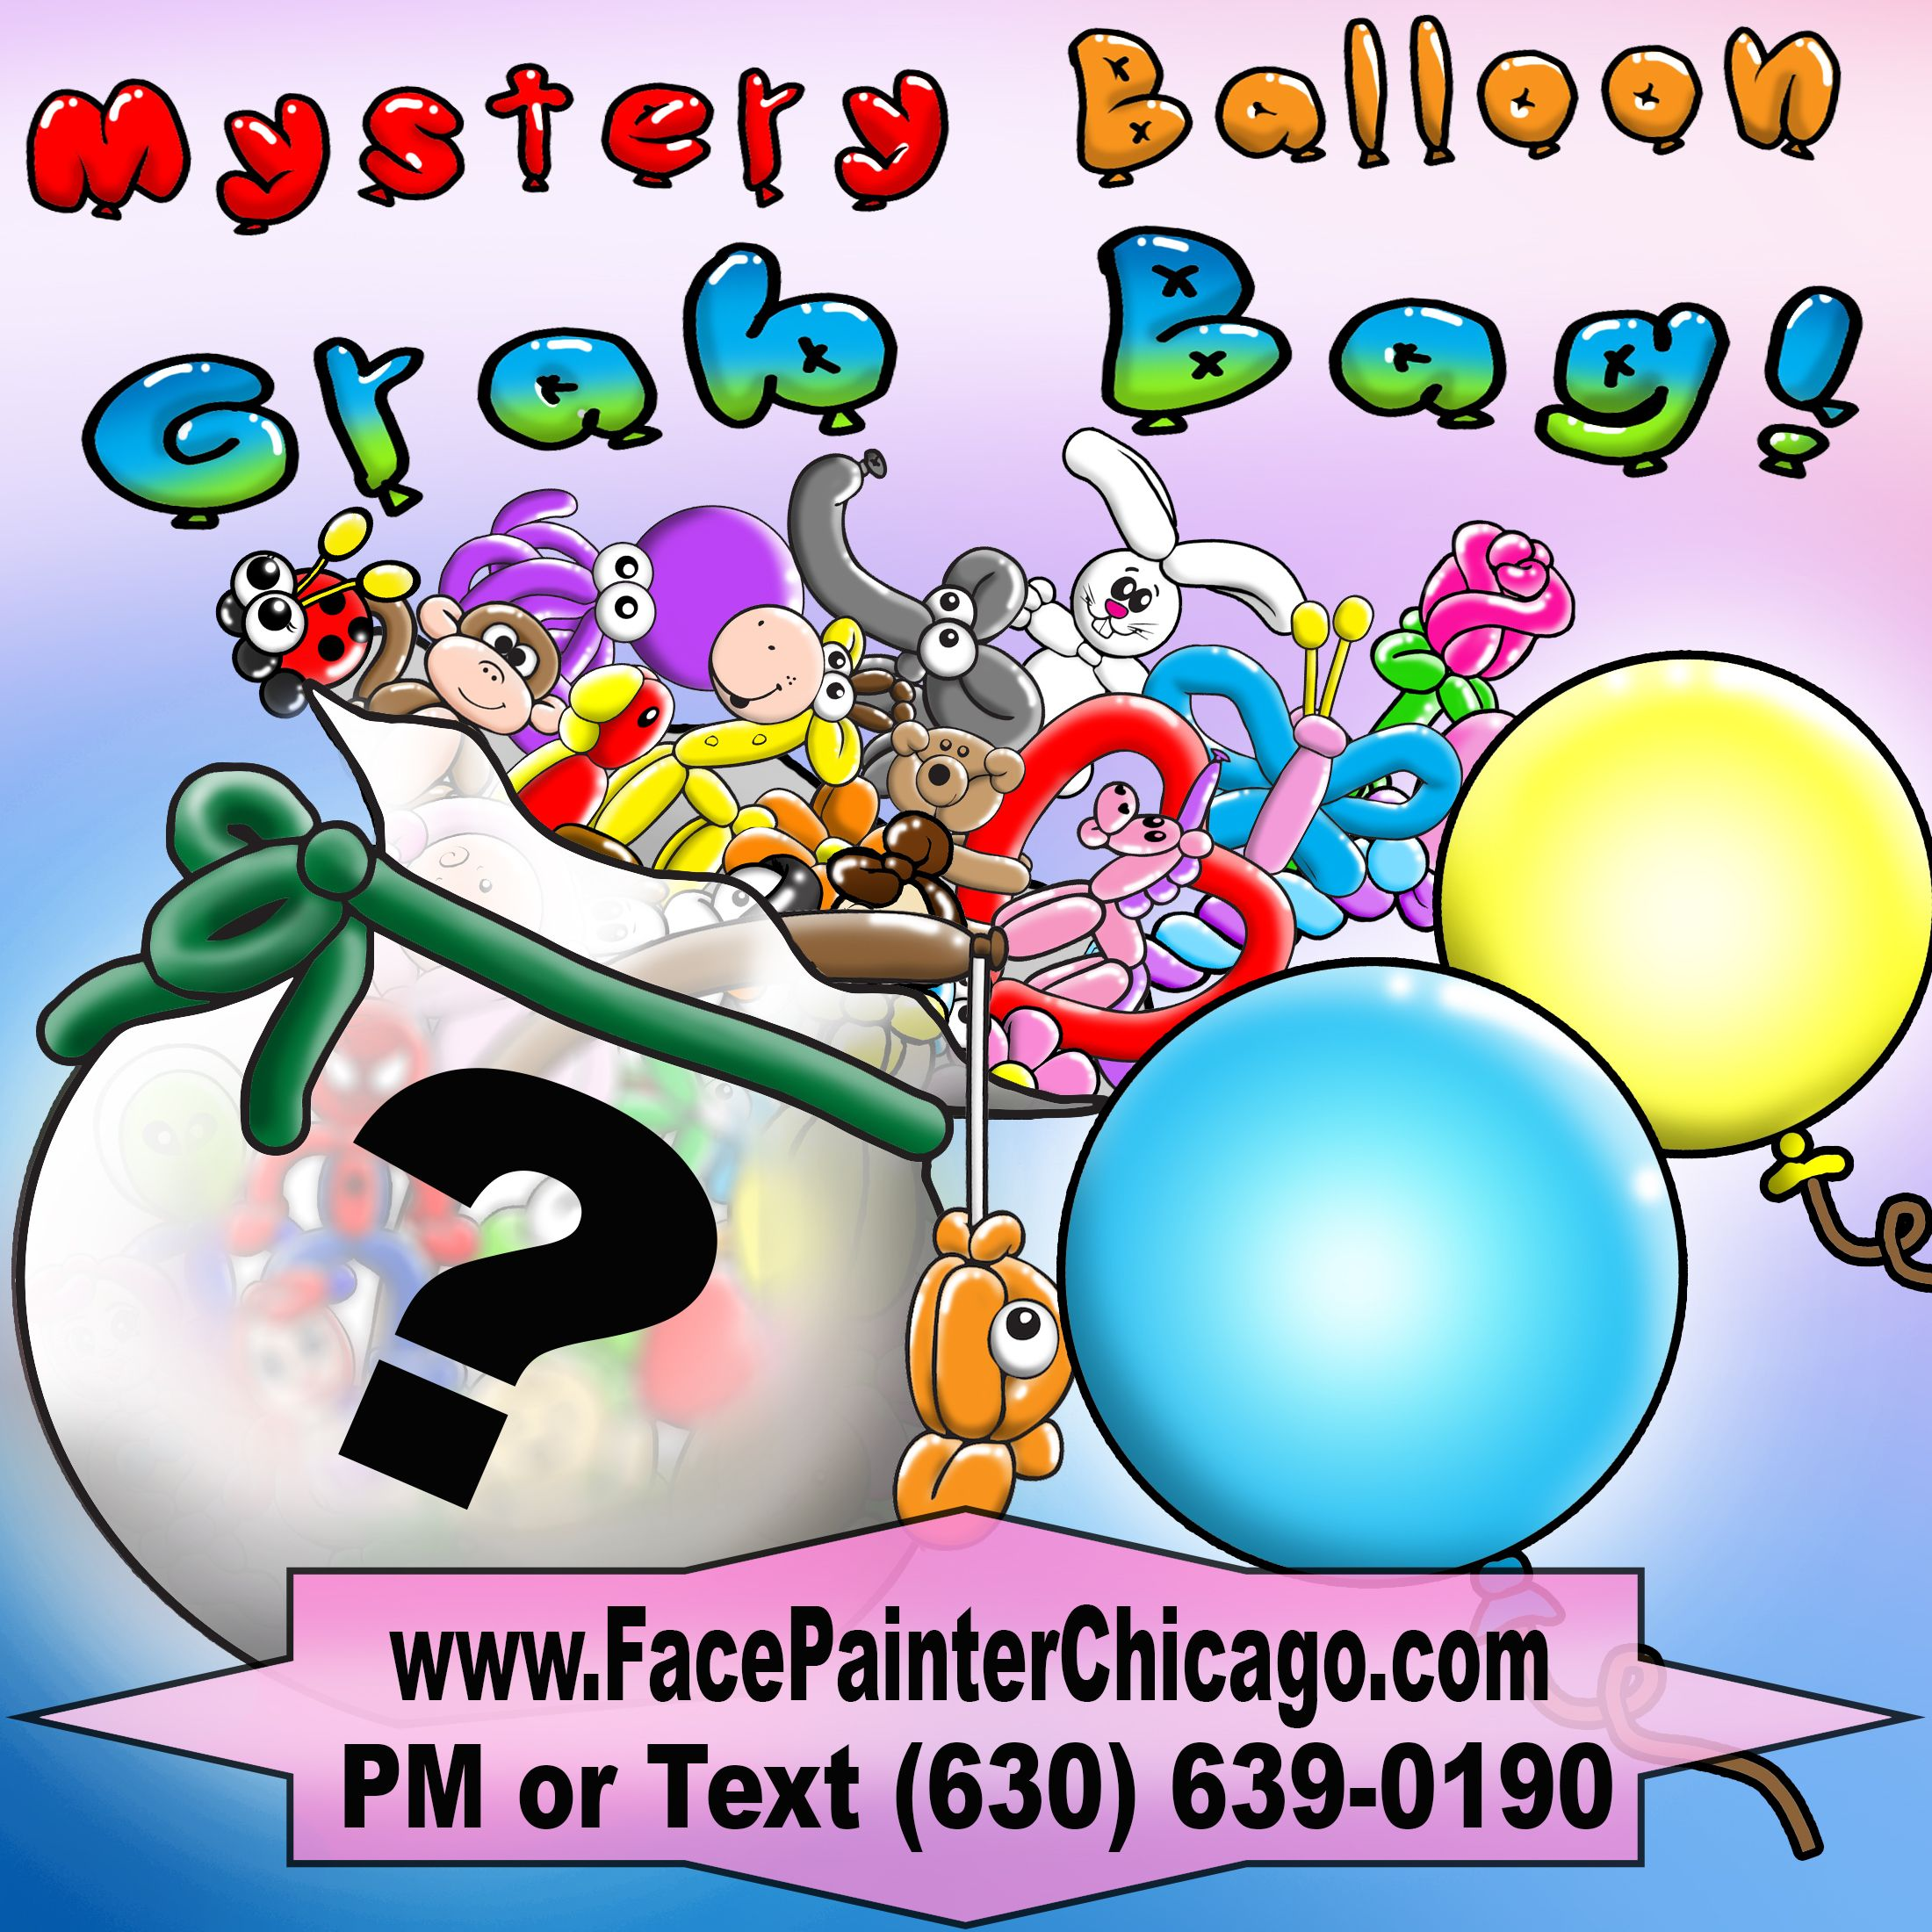 Valery mystery balloons adjustable.jpg